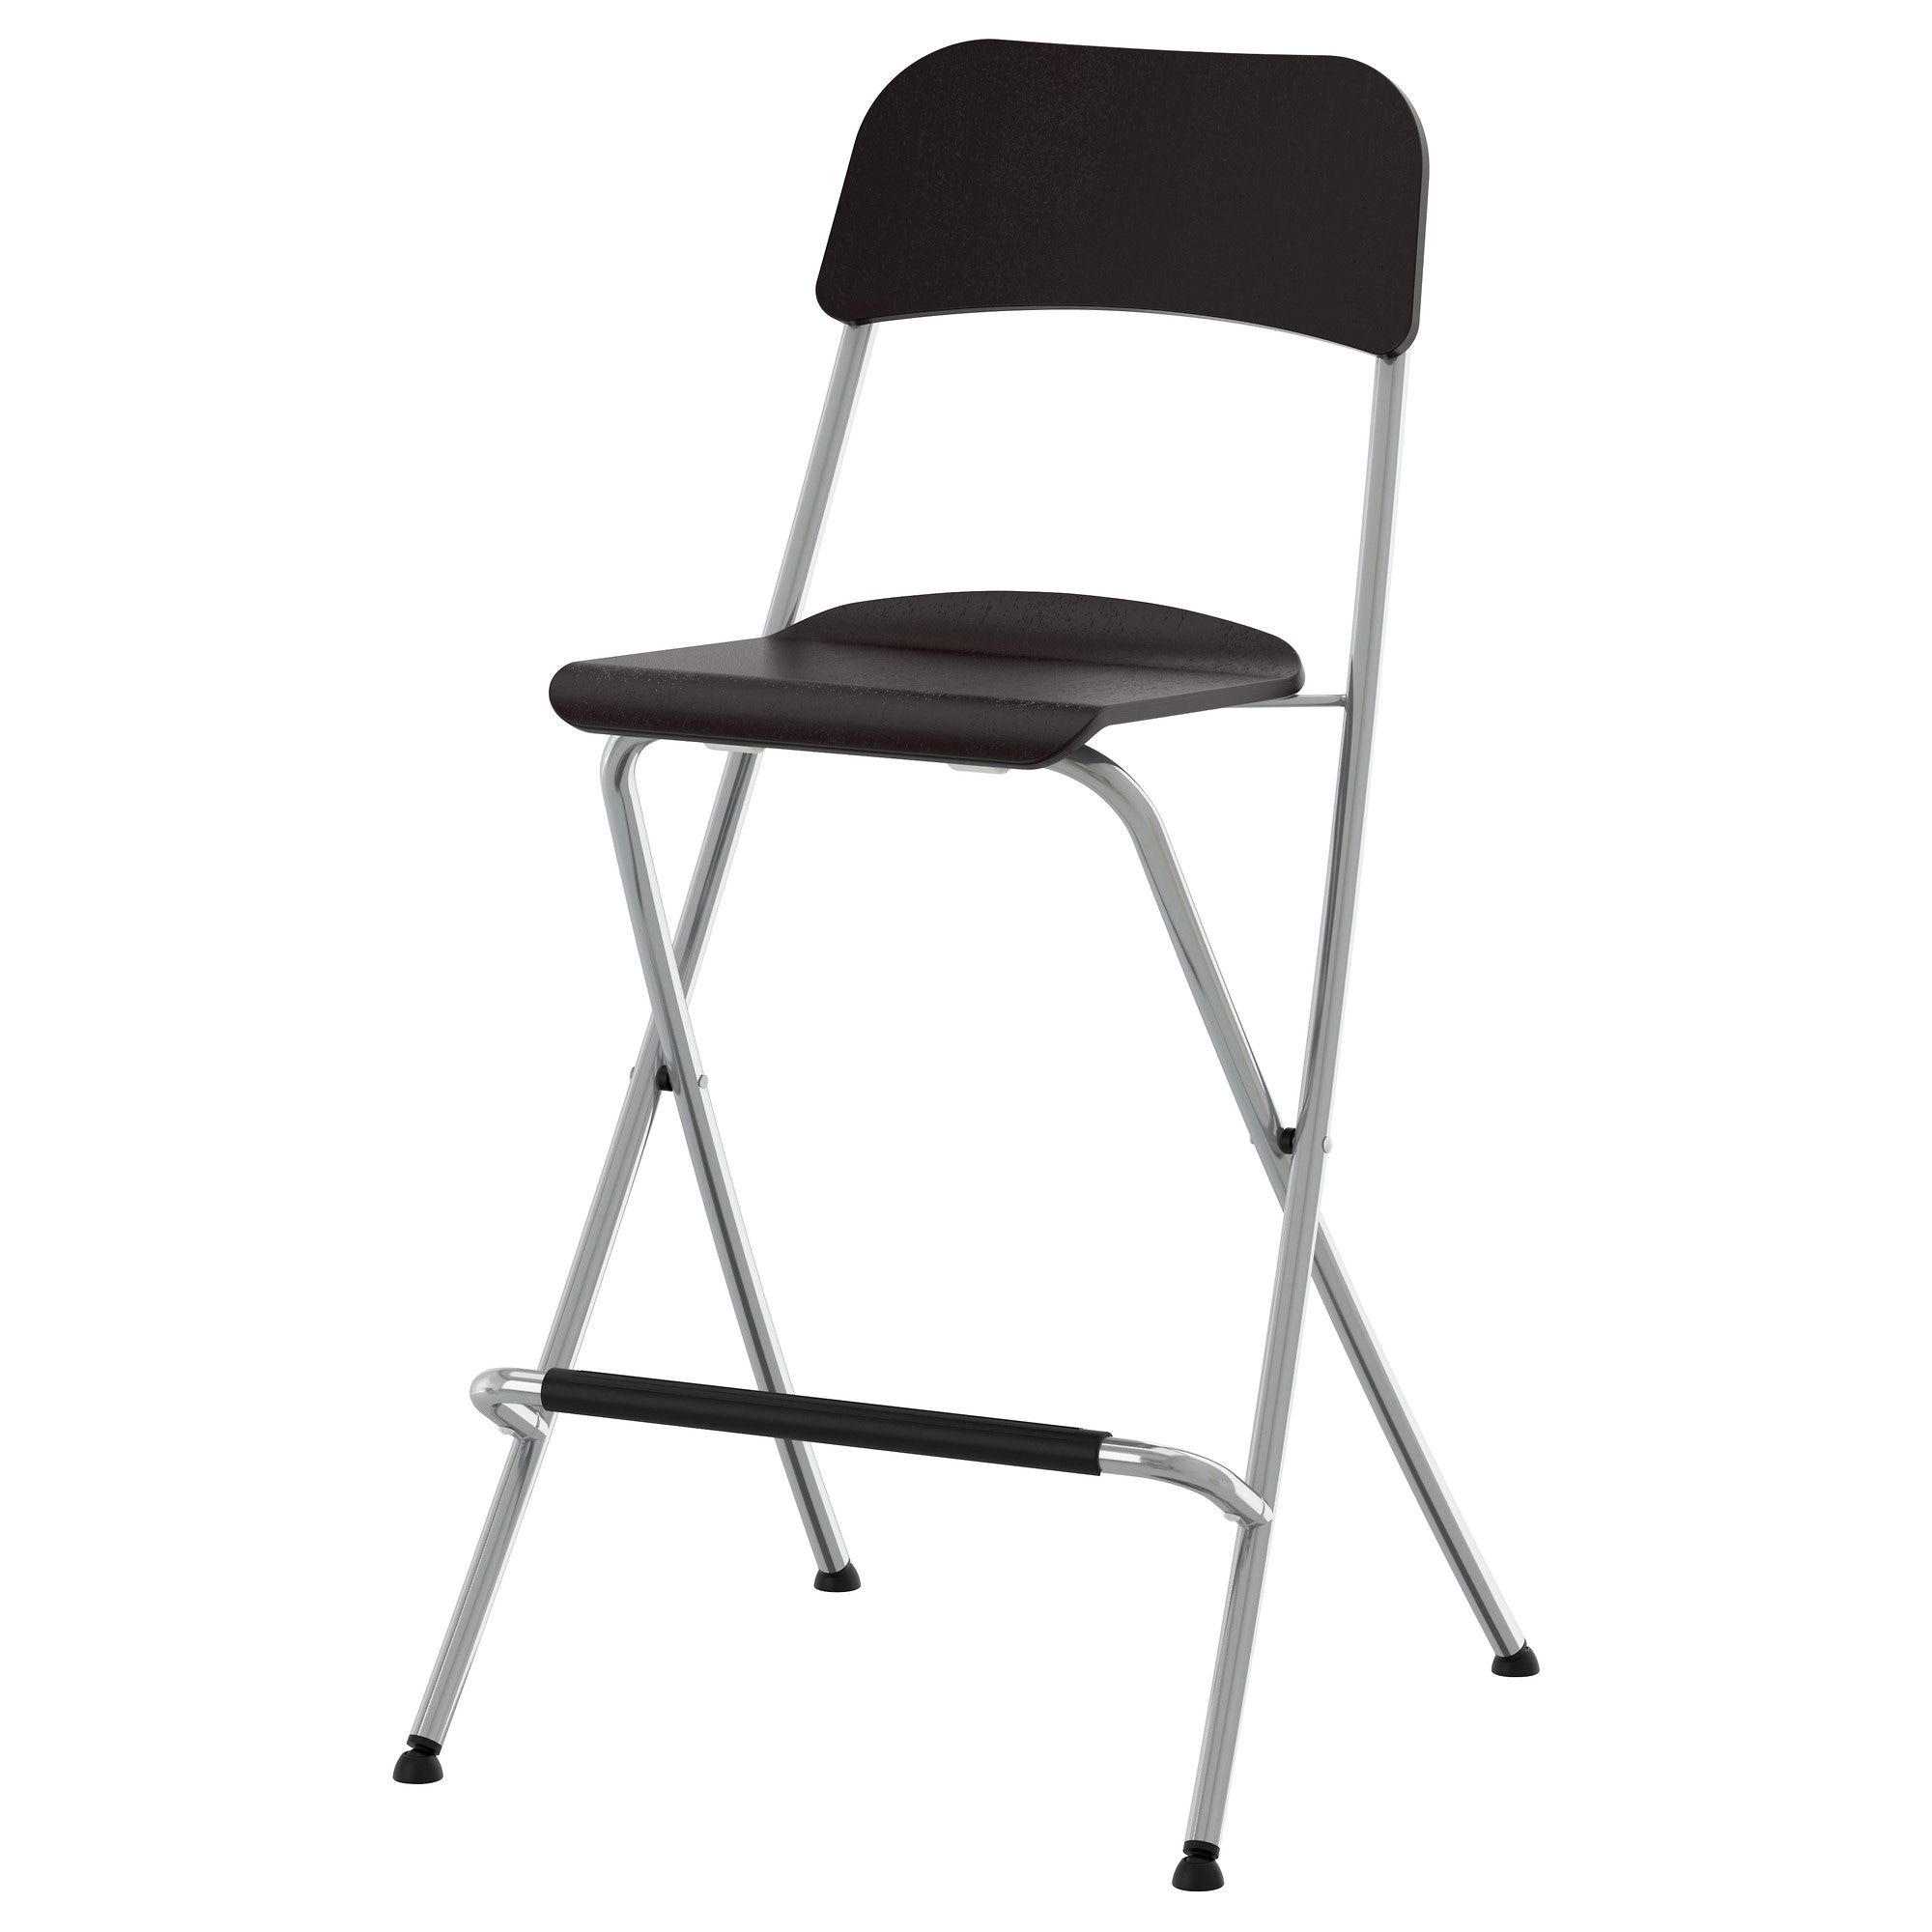 FRANKLIN Bar stool with backrest, foldable - 63 cm - IKEA